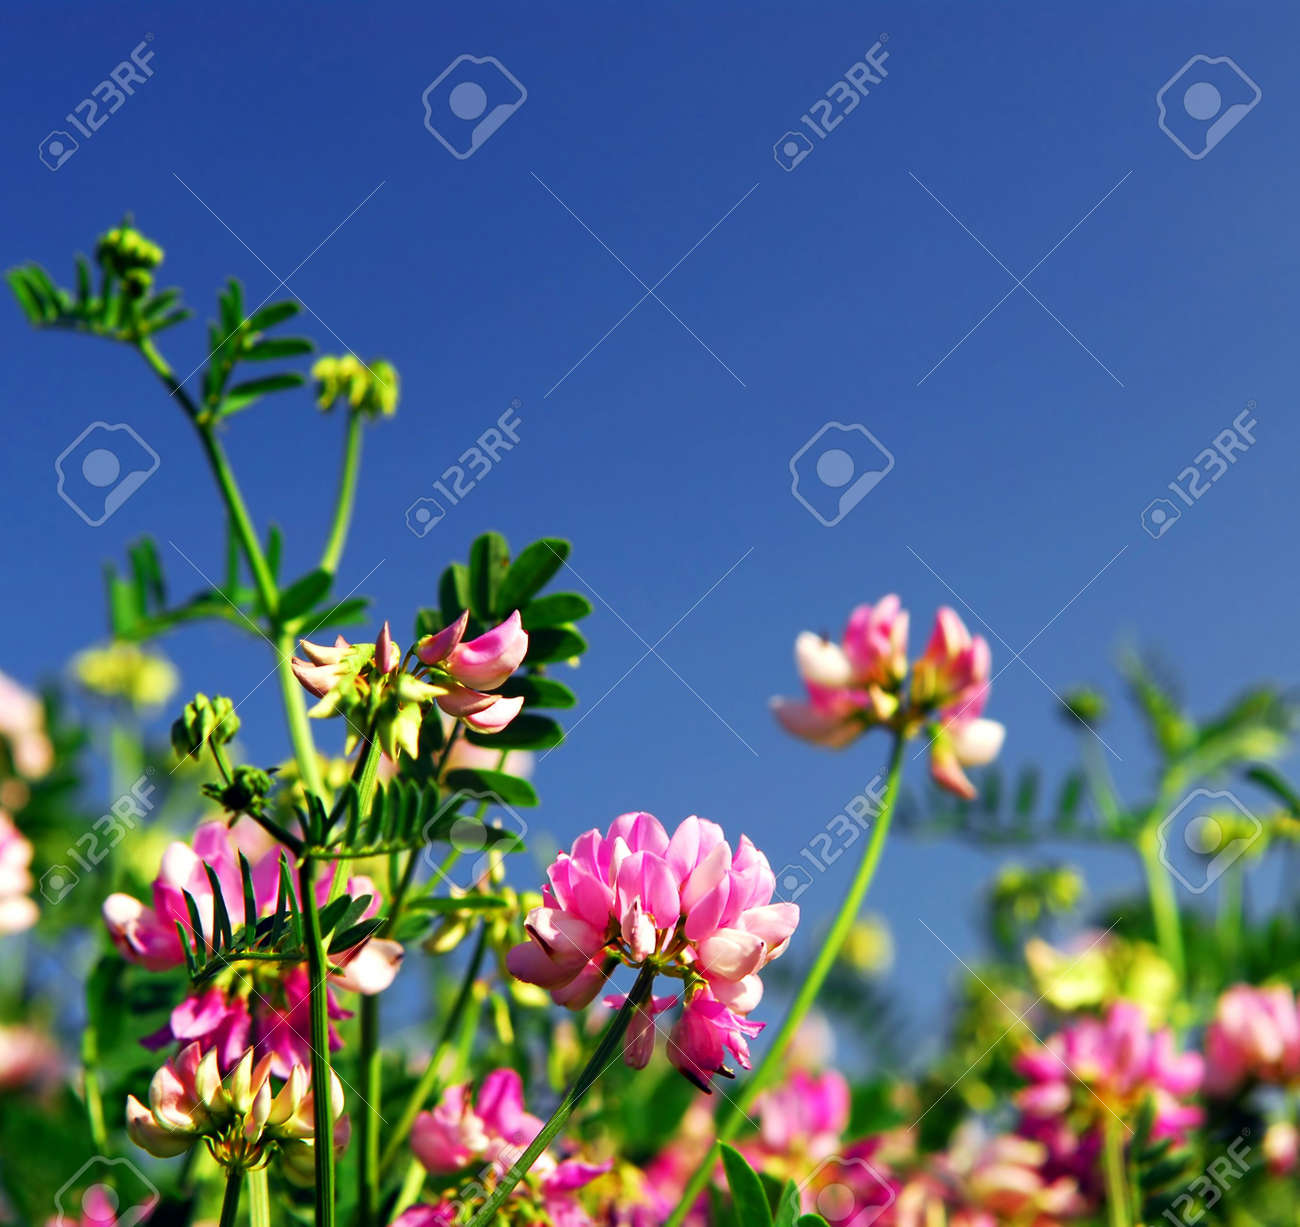 Summer meadow background with blooming pink flowers crown vetch stock photo summer meadow background with blooming pink flowers crown vetch and bright blue sky izmirmasajfo